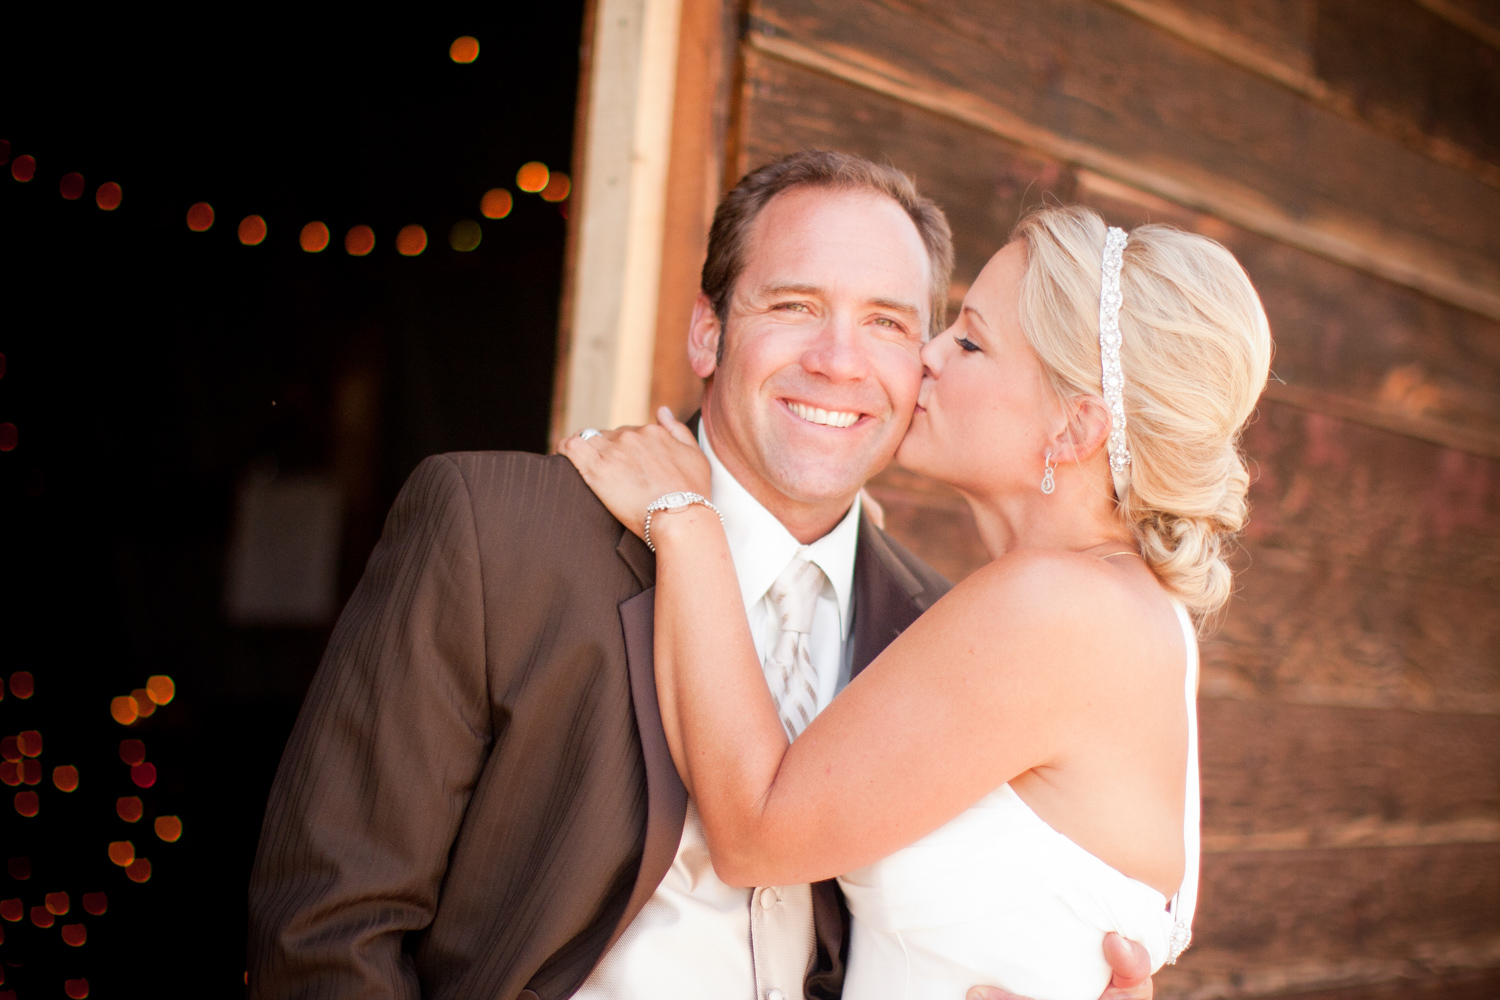 Steamboat_Springs_Wedding_019.JPG